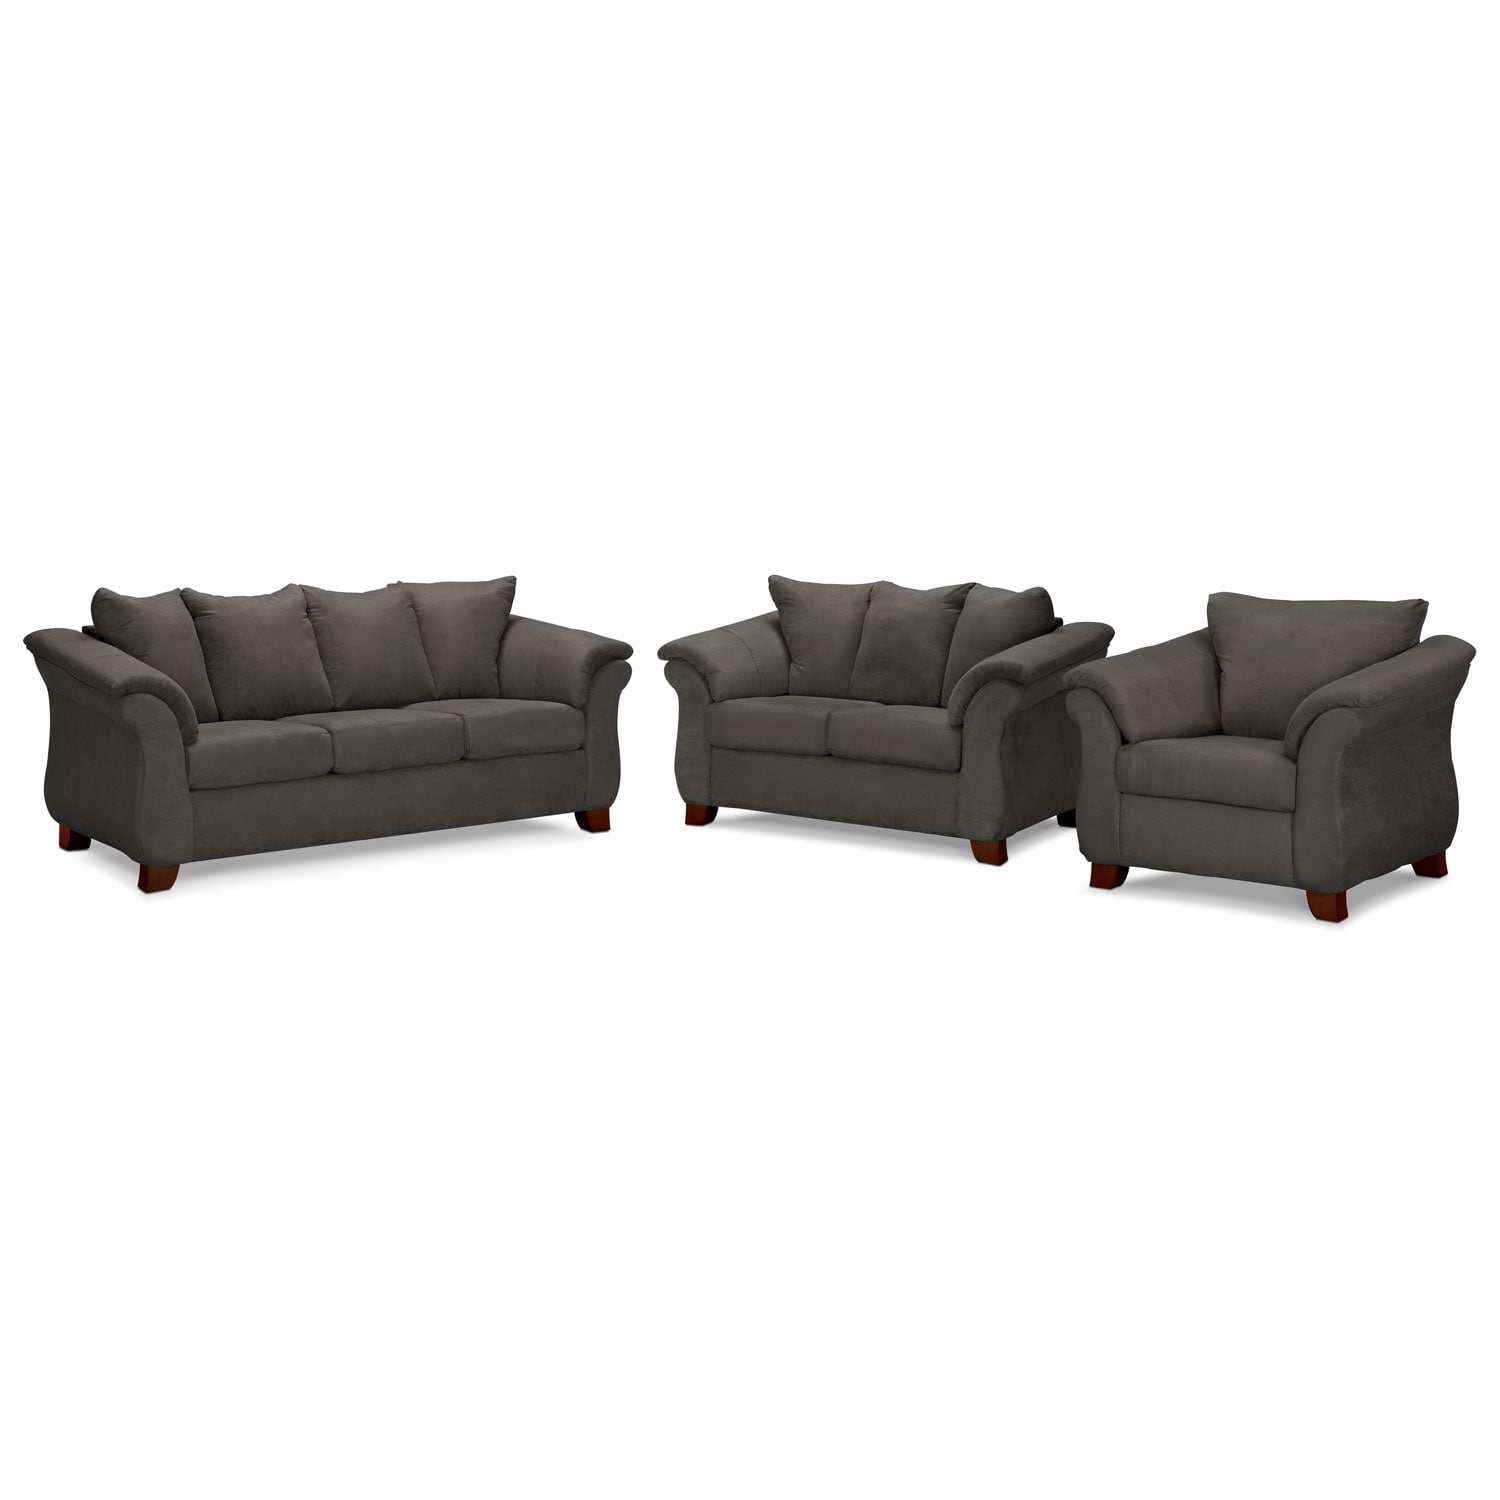 Living Room Furniture - Adrian Graphite 3 Pc. Living Room